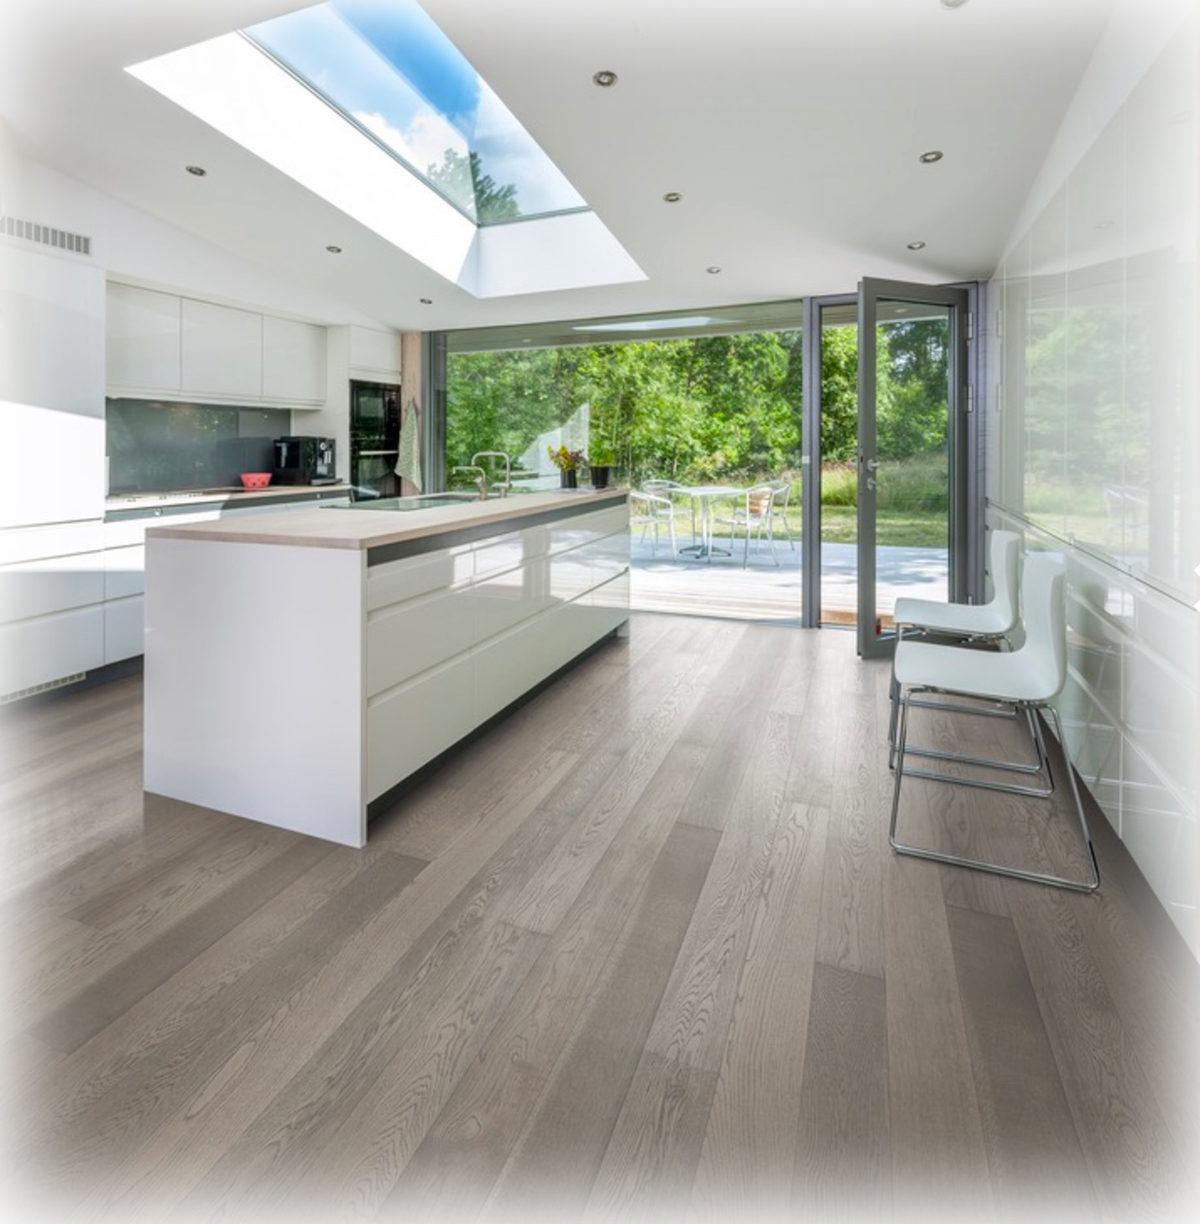 This Kitchenu0027s Use Of Clear White Oak, Which Minimizes The Woodu0027s Pattern  Variations, In